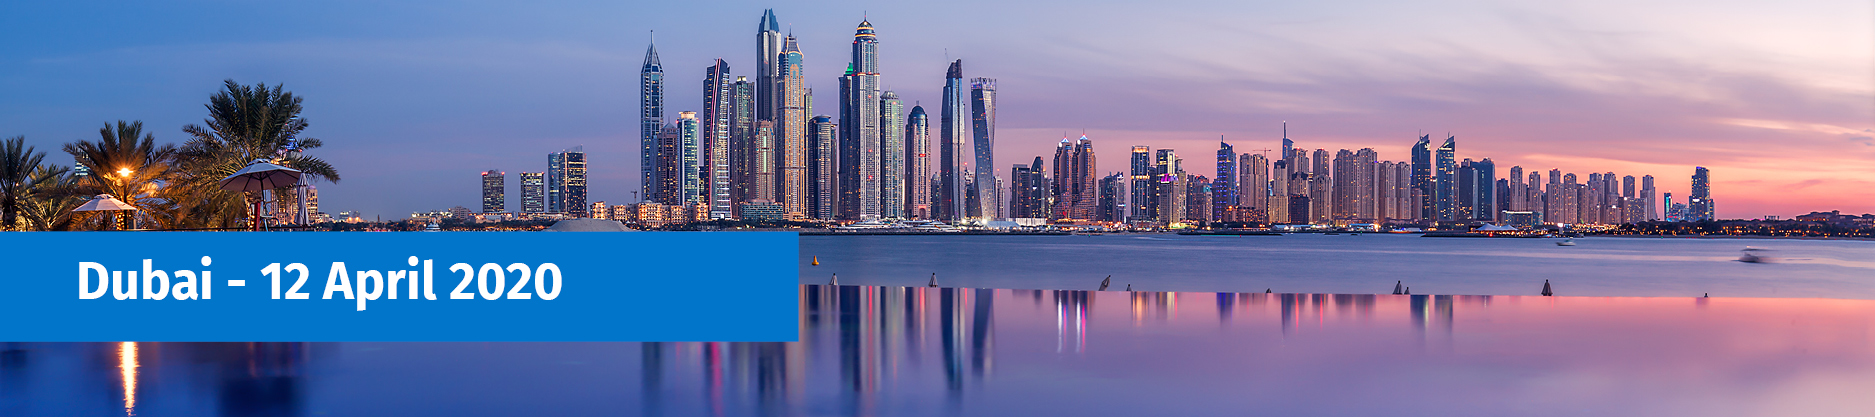 Cvent header TM Tech Forums 2020 Dubai